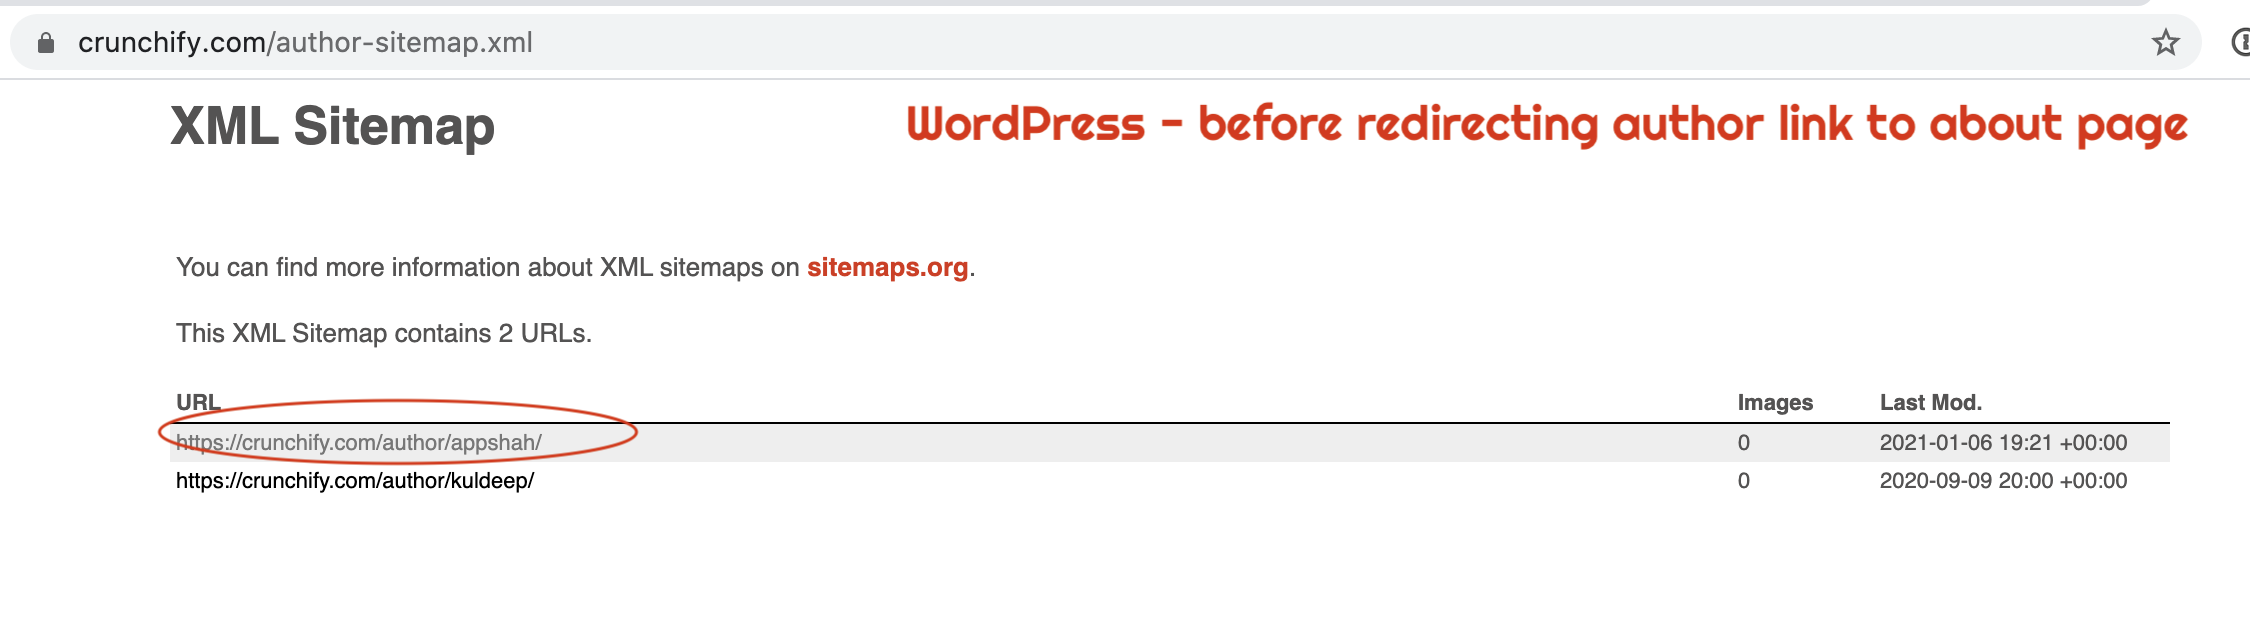 WordPress - before redirecting author link to about page